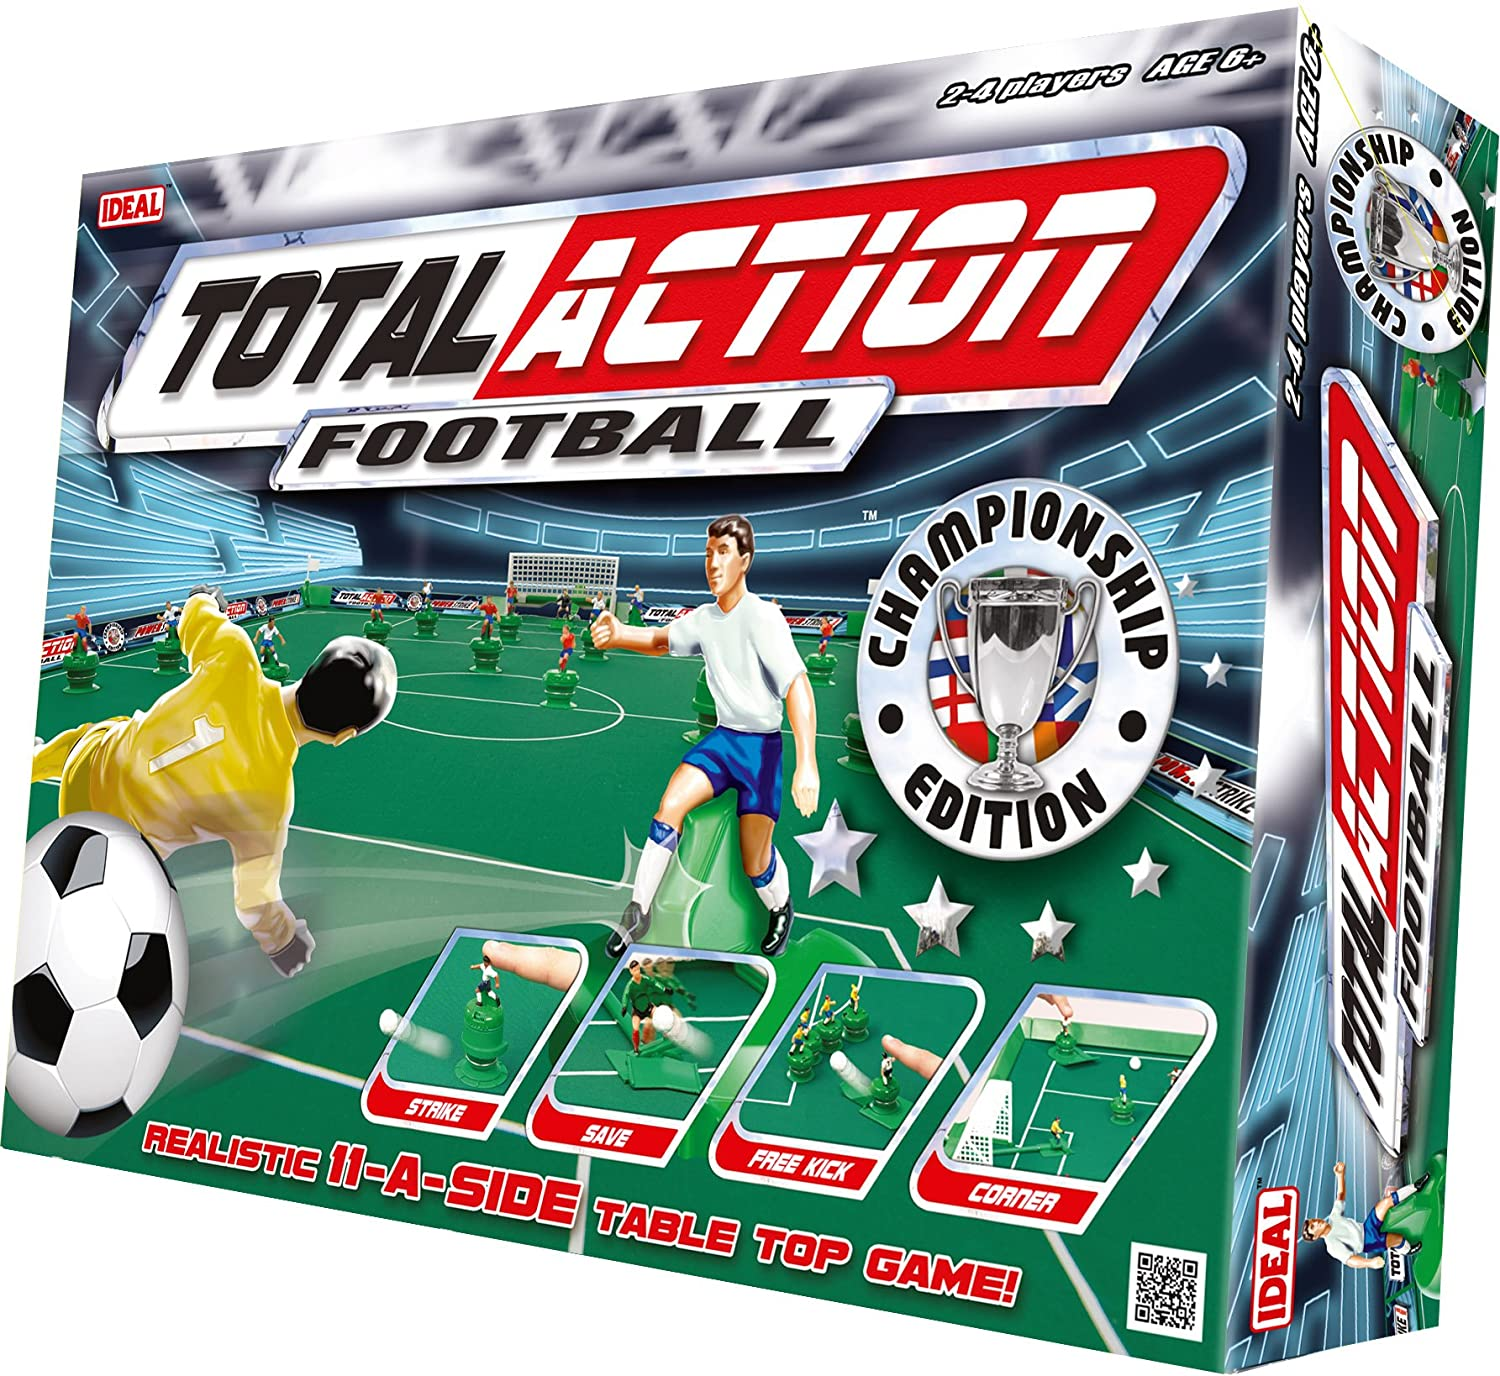 John Adams Total Action Football Game Amazon Toys & Games